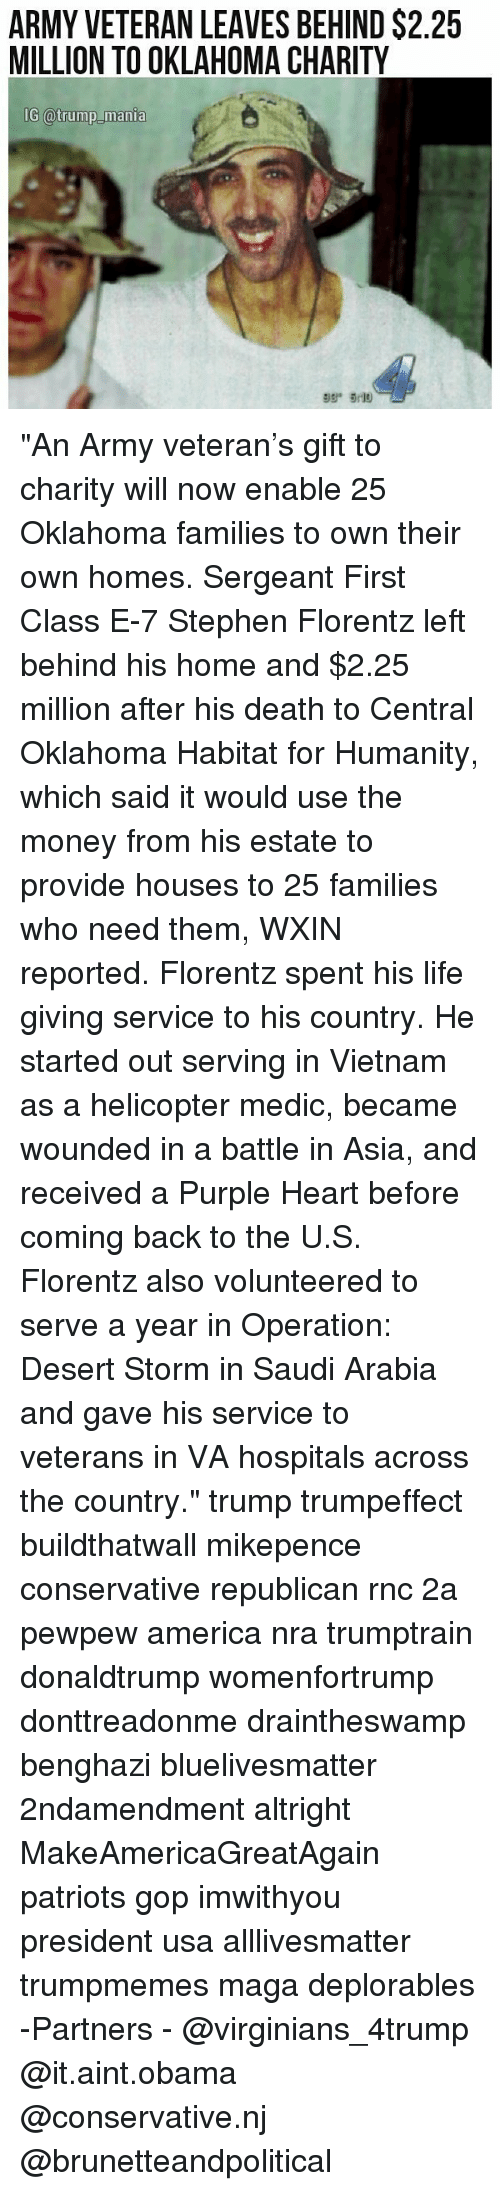 """All Lives Matter, America, and Life: ARMY VETERAN LEAVES BEHIND $2.25  MILLION TO OKLAHOMA CHARITY  6 @trump manla """"An Army veteran's gift to charity will now enable 25 Oklahoma families to own their own homes. Sergeant First Class E-7 Stephen Florentz left behind his home and $2.25 million after his death to Central Oklahoma Habitat for Humanity, which said it would use the money from his estate to provide houses to 25 families who need them, WXIN reported. Florentz spent his life giving service to his country. He started out serving in Vietnam as a helicopter medic, became wounded in a battle in Asia, and received a Purple Heart before coming back to the U.S. Florentz also volunteered to serve a year in Operation: Desert Storm in Saudi Arabia and gave his service to veterans in VA hospitals across the country."""" trump trumpeffect buildthatwall mikepence conservative republican rnc 2a pewpew america nra trumptrain donaldtrump womenfortrump donttreadonme draintheswamp benghazi bluelivesmatter 2ndamendment altright MakeAmericaGreatAgain patriots gop imwithyou president usa alllivesmatter trumpmemes maga deplorables -Partners - @virginians_4trump @it.aint.obama @conservative.nj @brunetteandpolitical"""